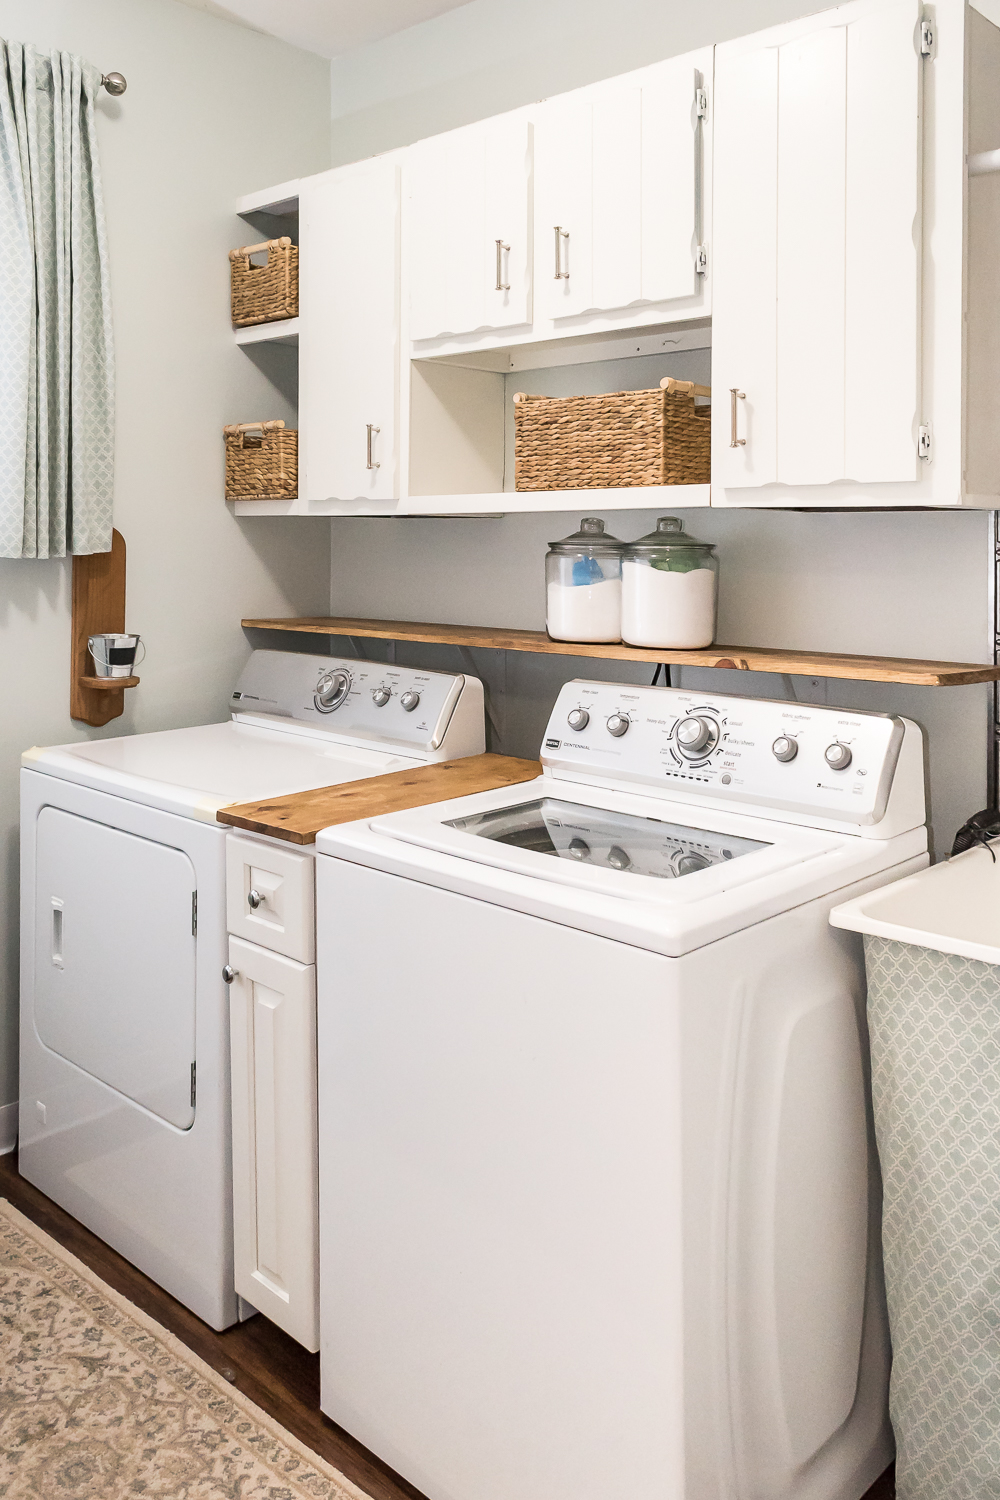 This 300 Laundry Room Makeover Will Make Your Jaw Drop